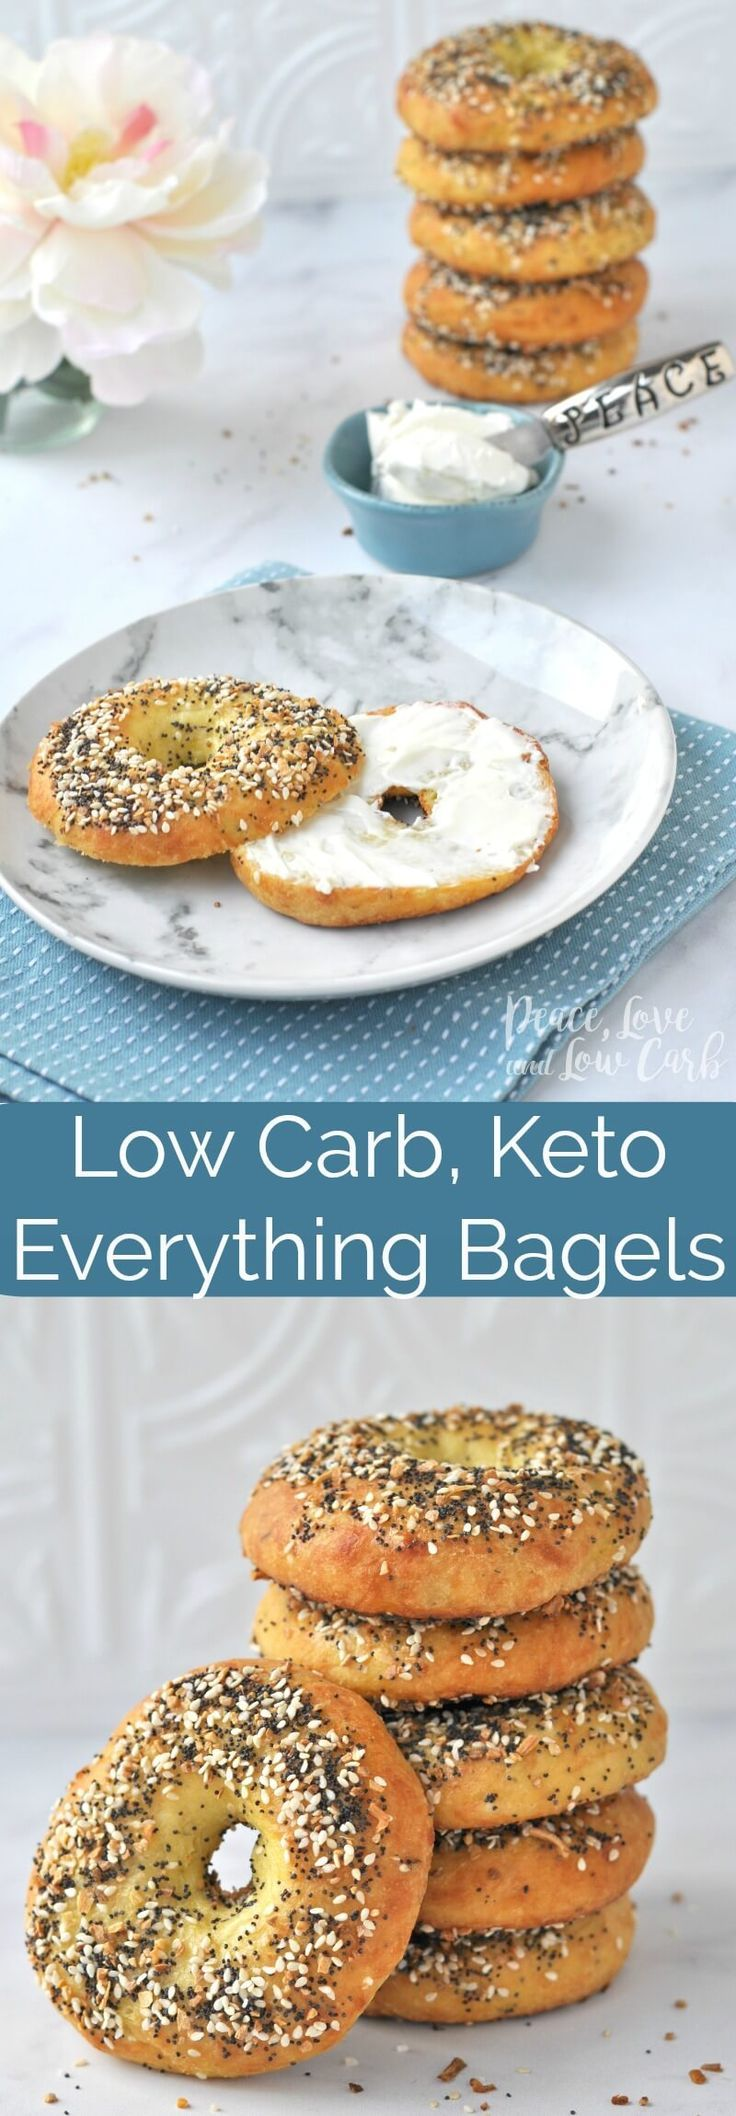 Low Carb Keto Everything Bagels   Peace Love and Low Carb via @PeaceLoveLoCarb